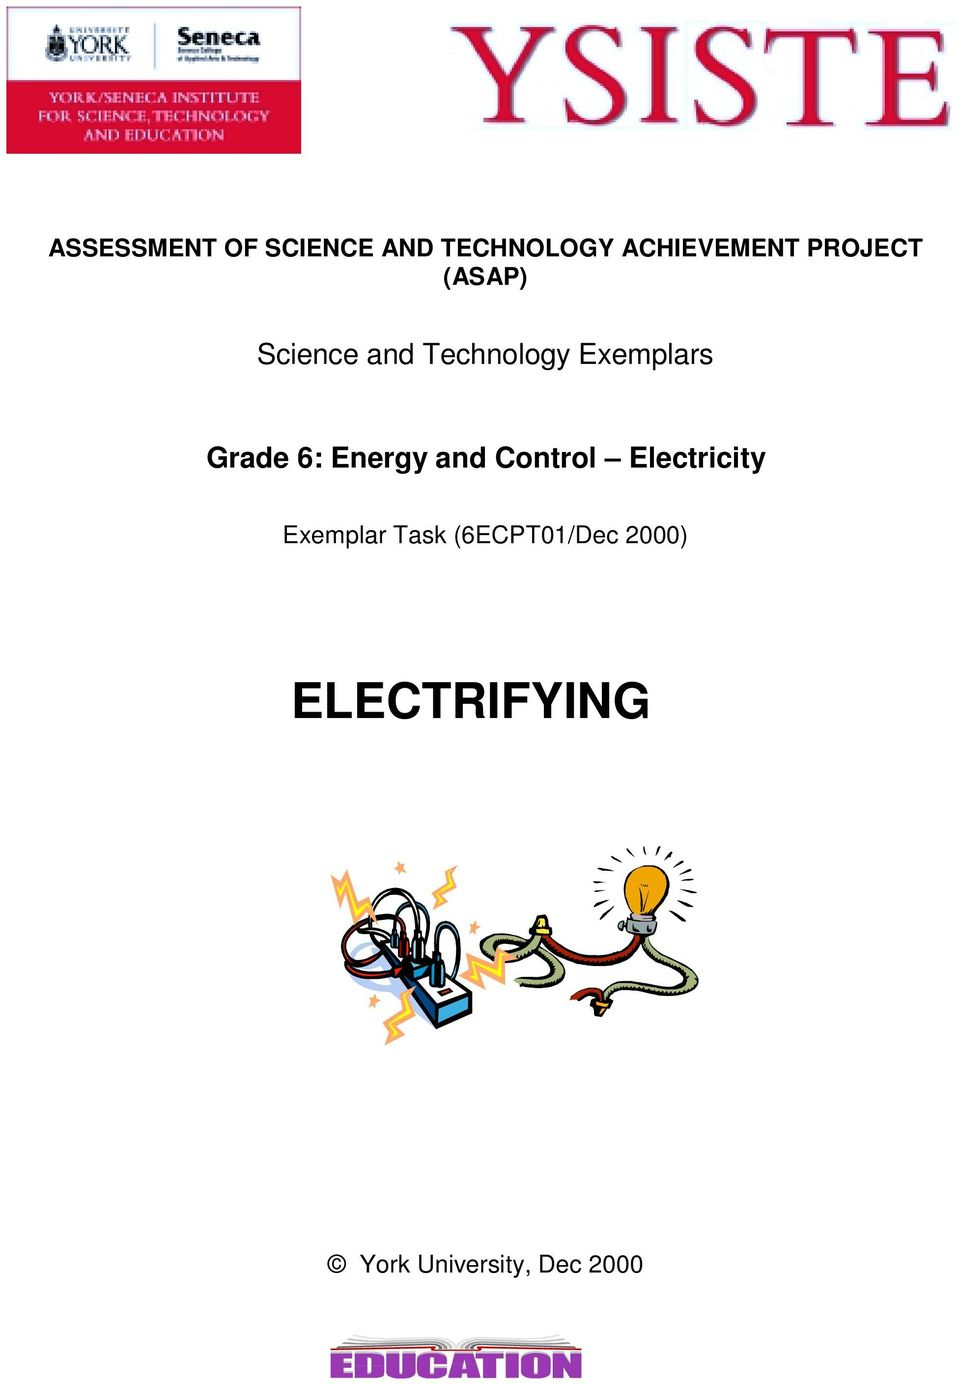 Grade 6: Energy and Control Electricity Exemplar